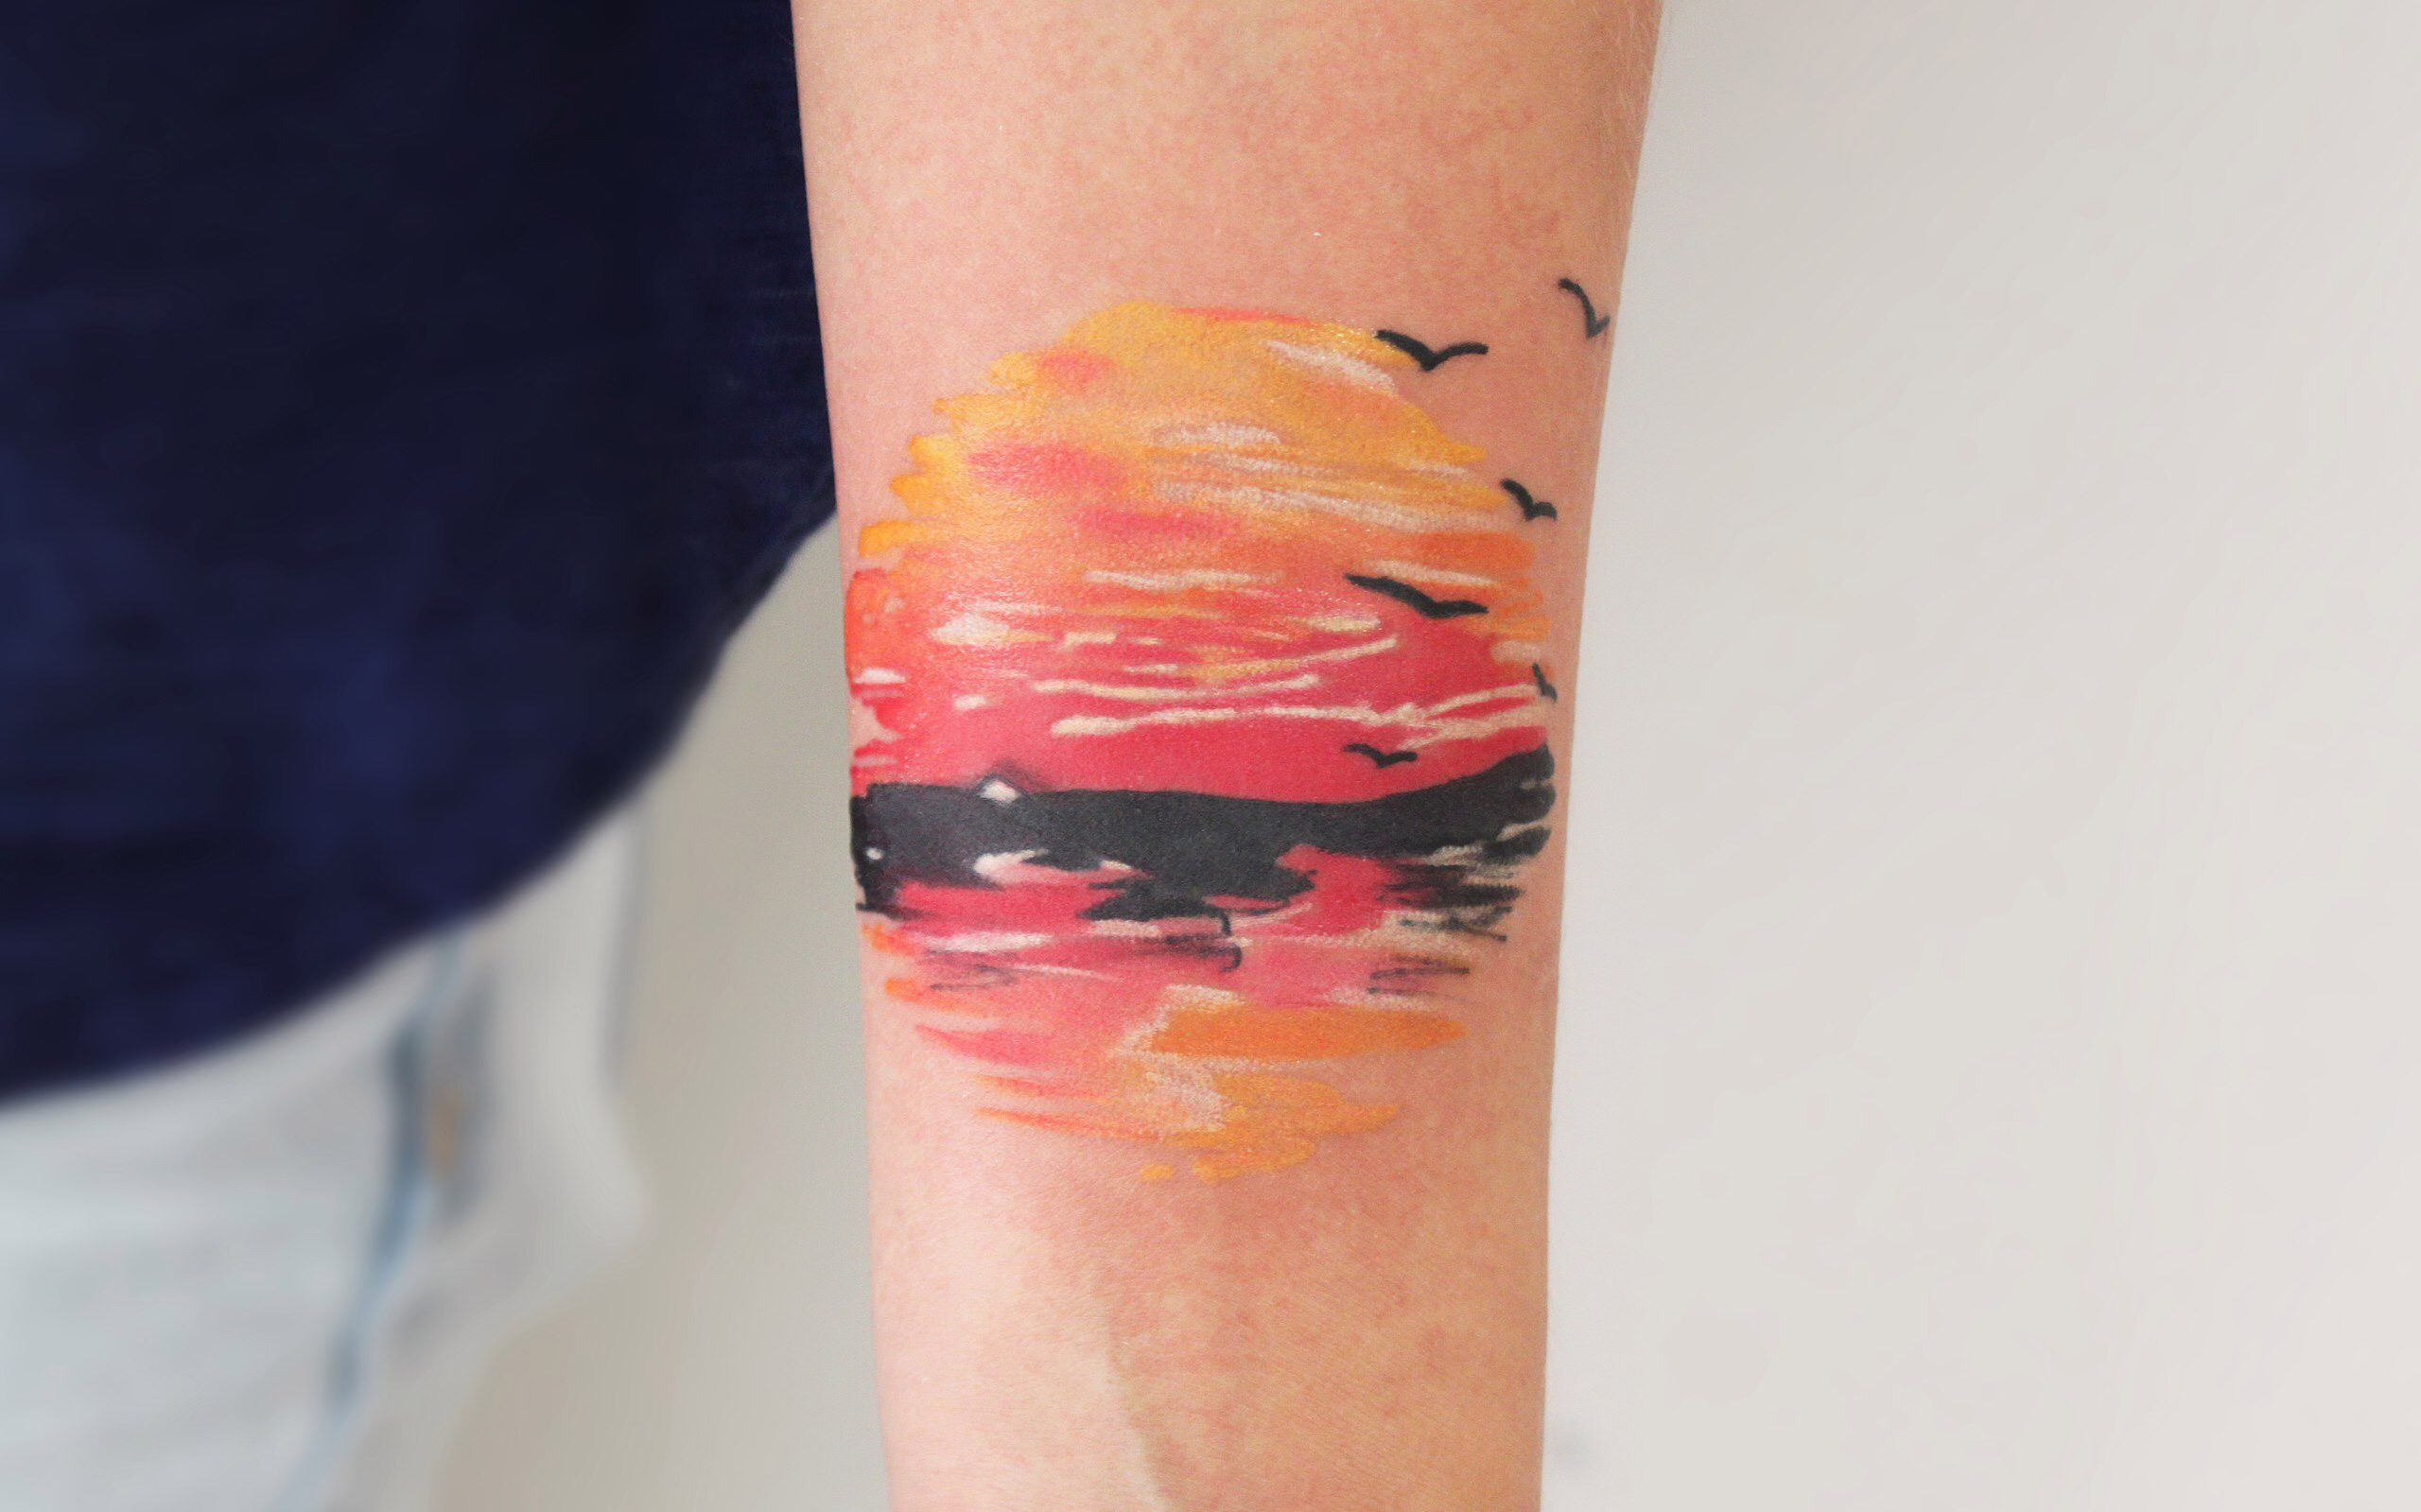 Sunset Tattoo Sunset Tattoos Pretty Tattoos Tattoo Designs